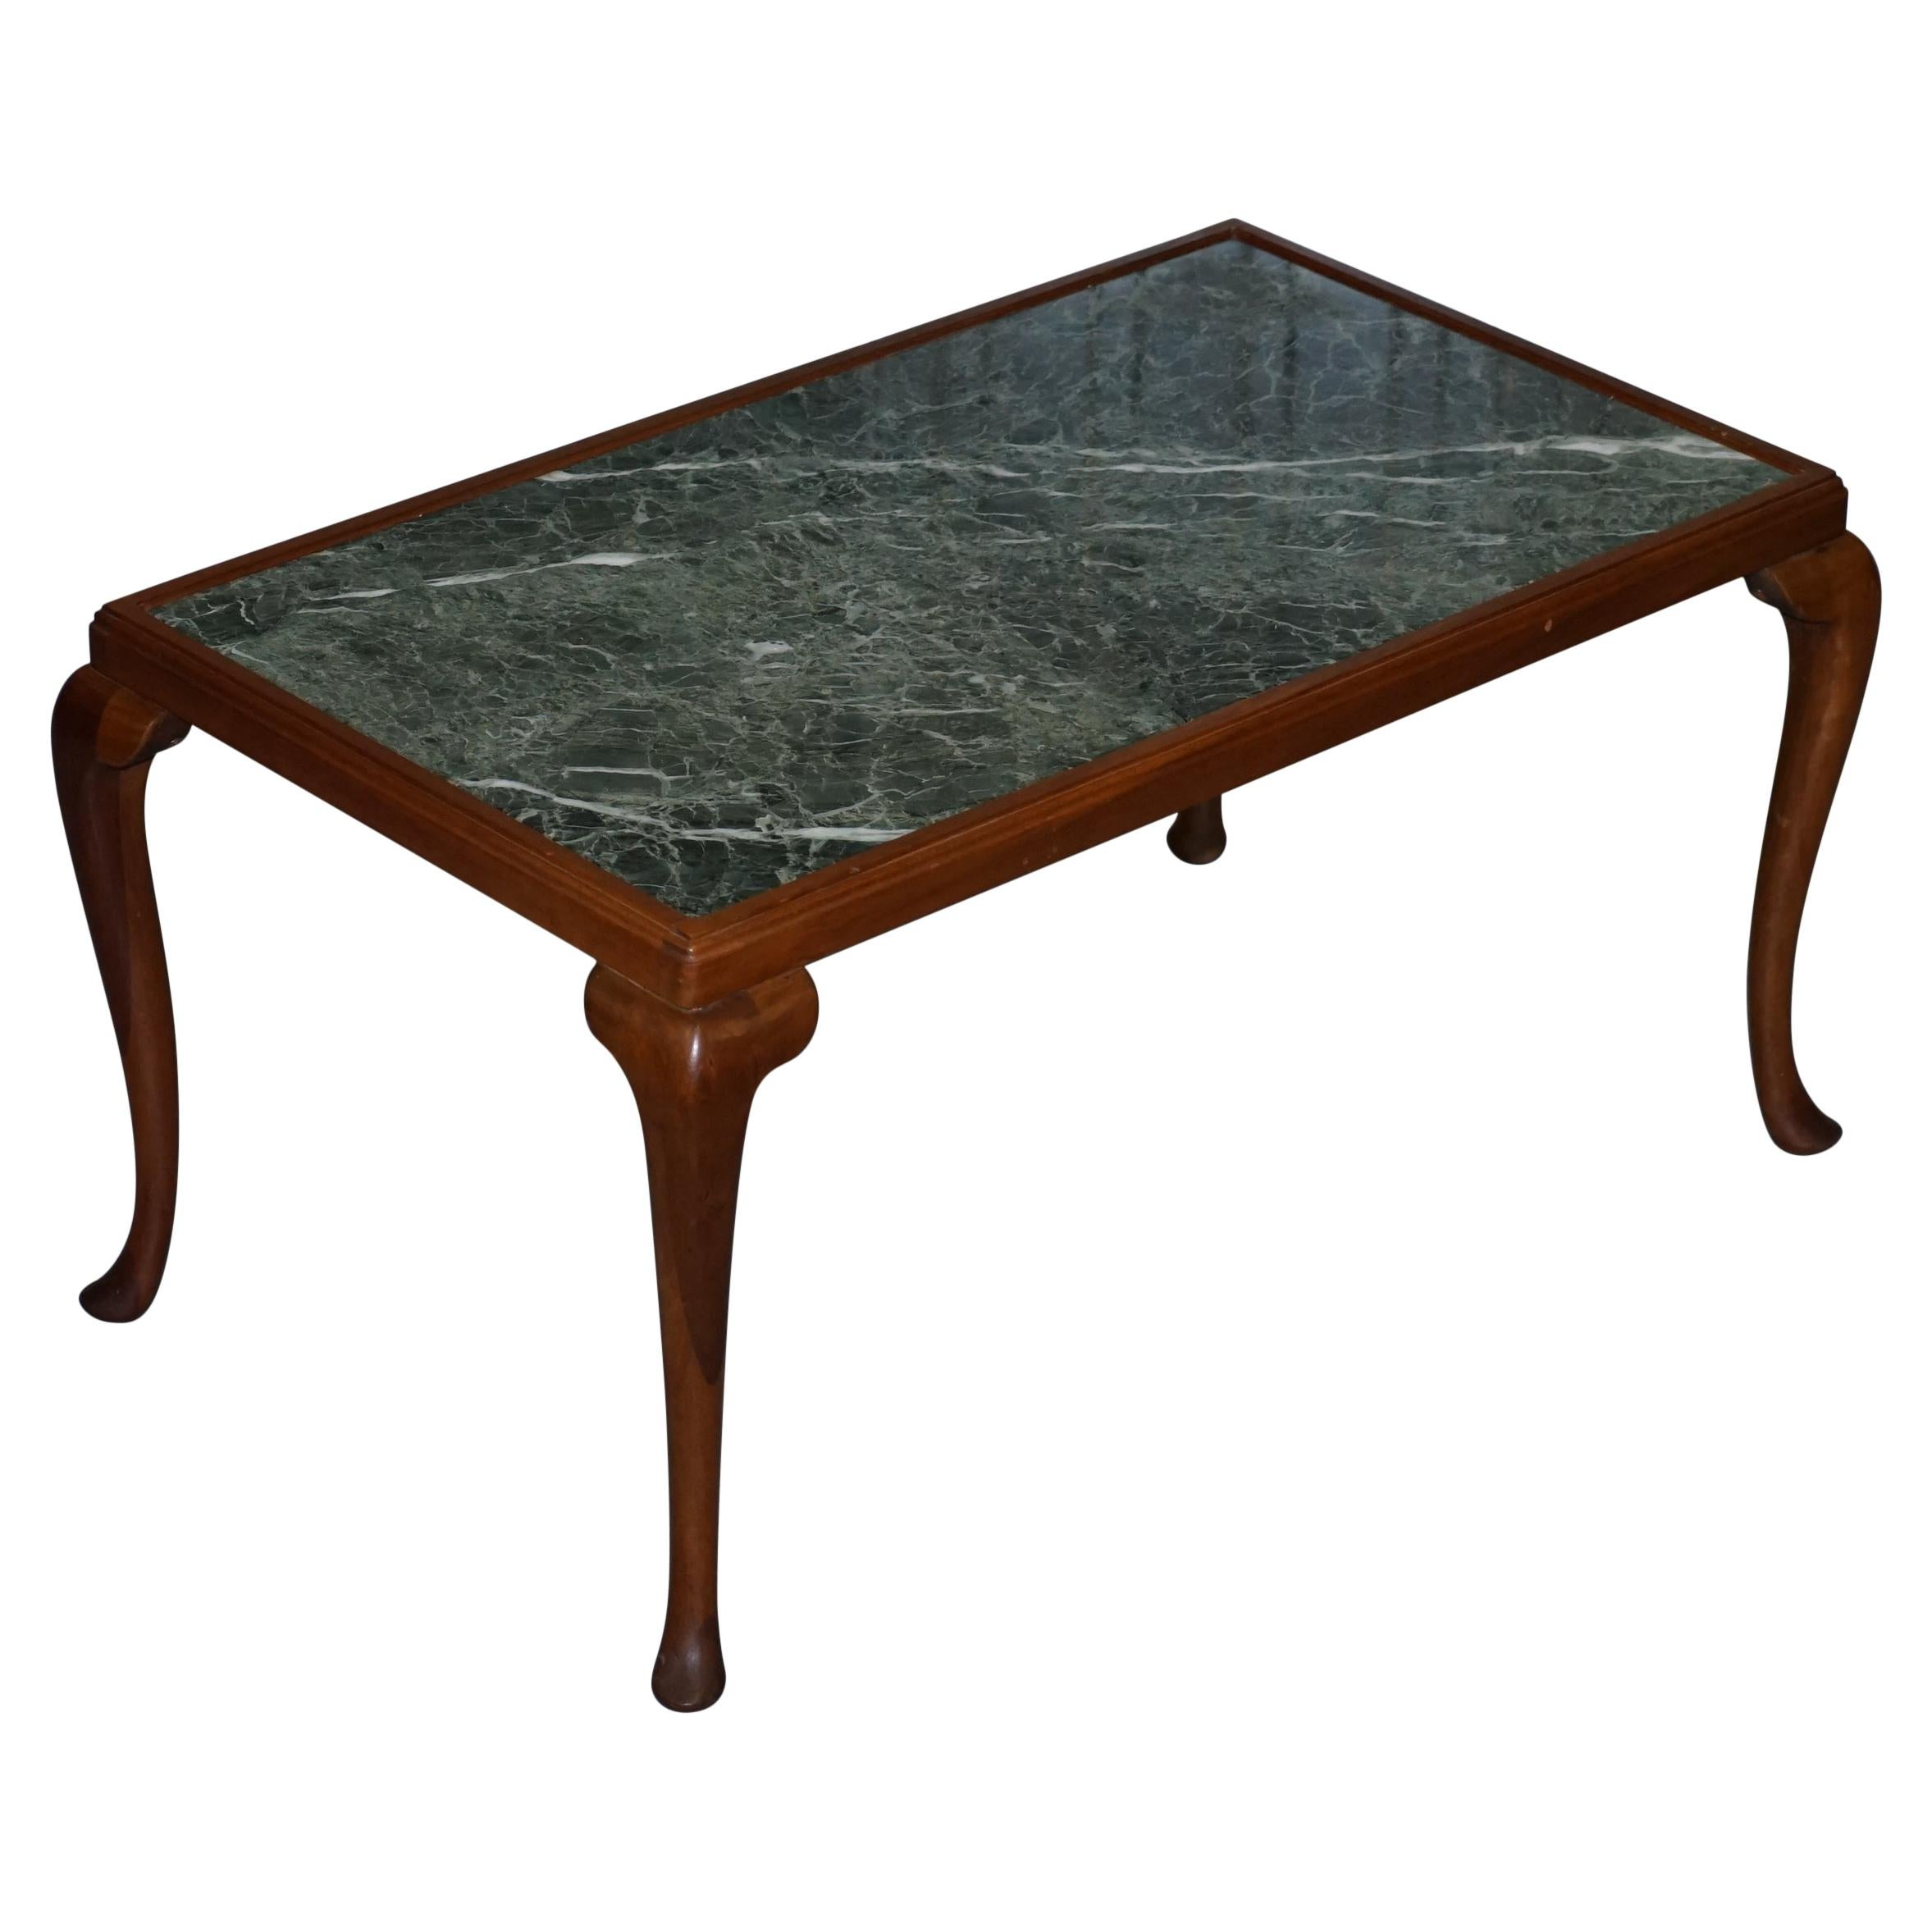 Lovely Vintage Walnut Framed with Solid Marble-Top Coffee or Cocktail Table